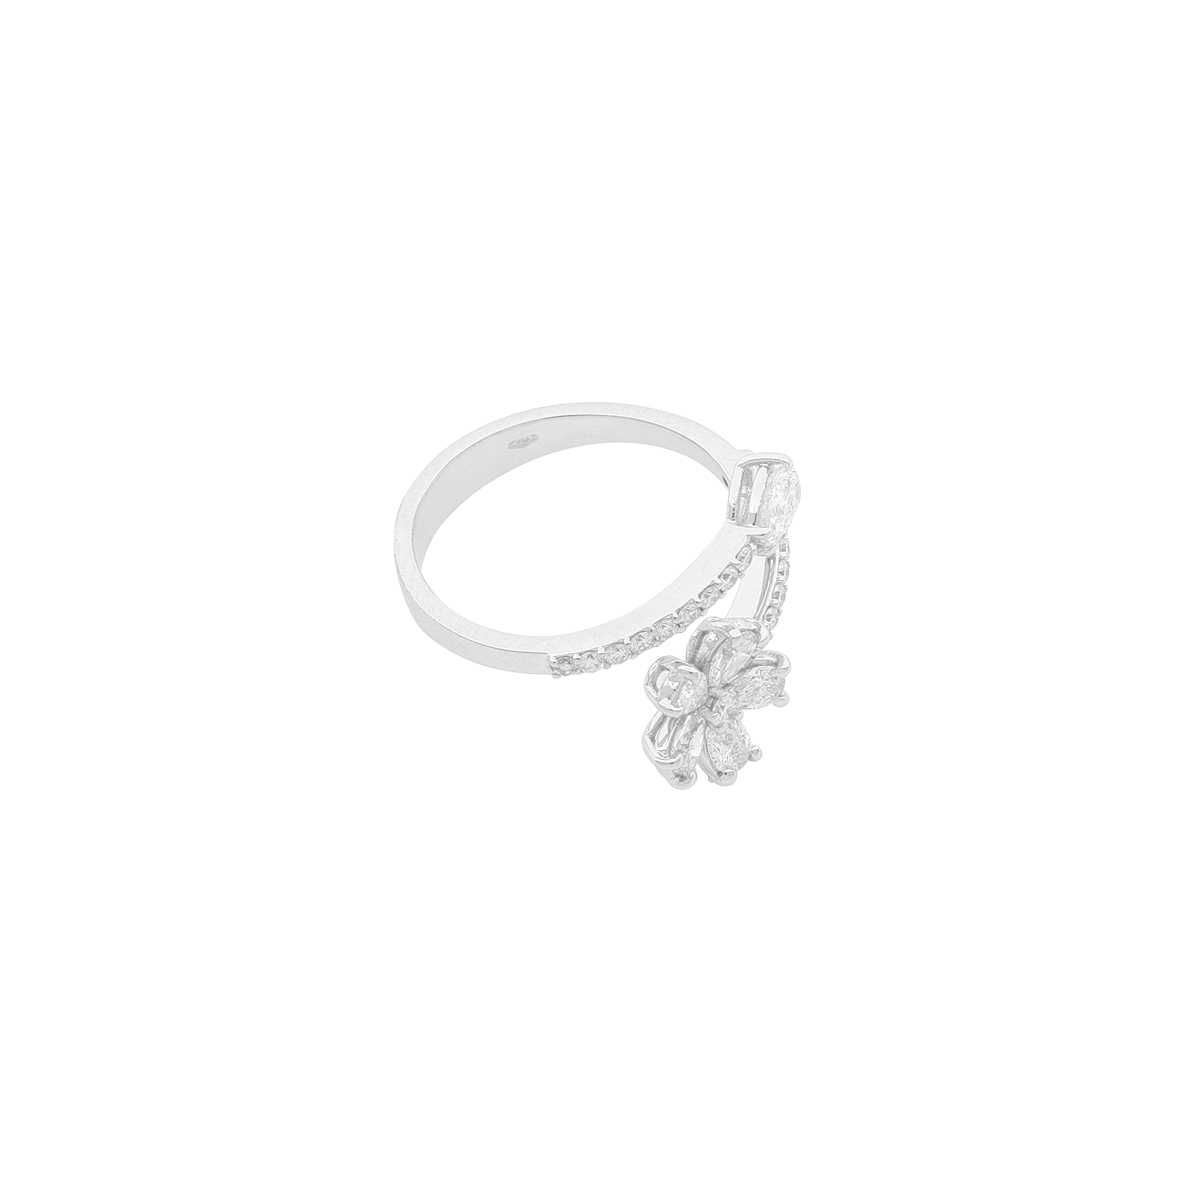 Flower and Pear-Cut Diamond Bypass Ring in White Gold